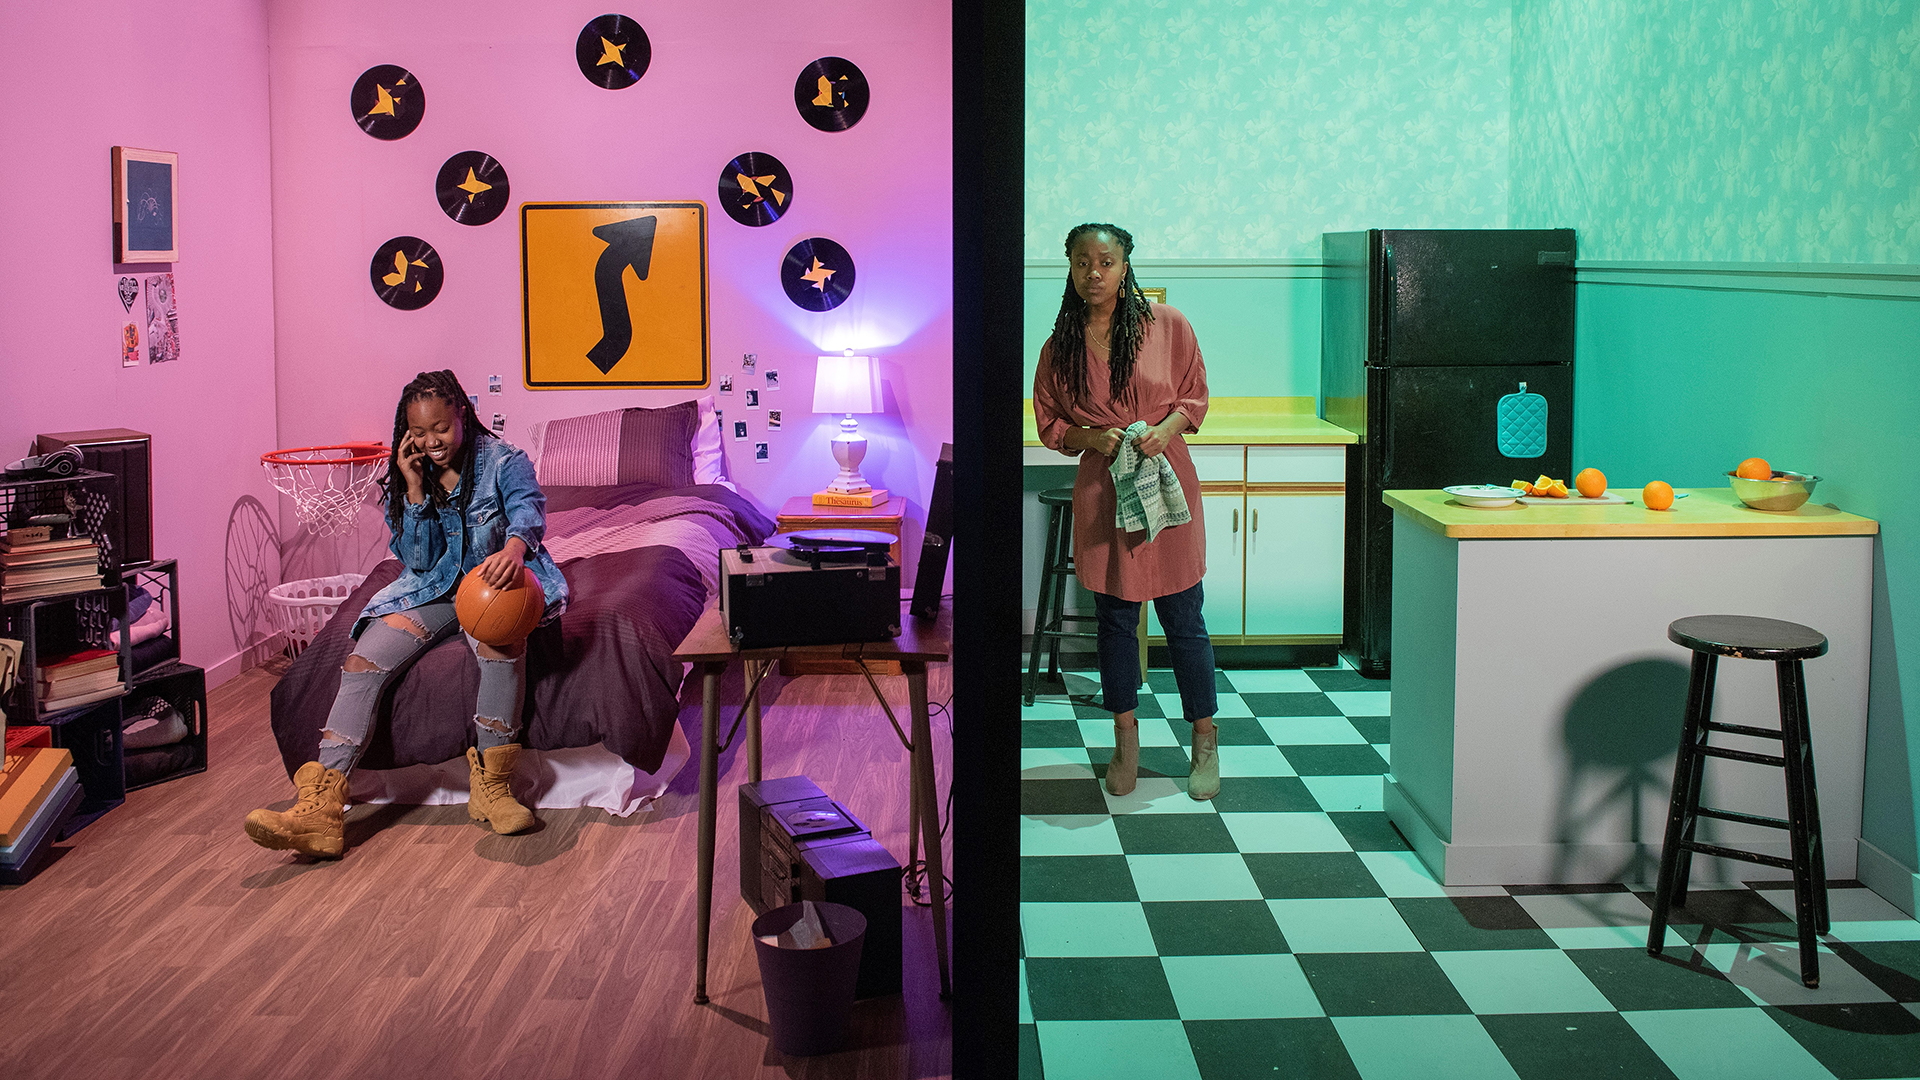 The Light: A split screen of two sets in The Light - a kitchen and a bedroom